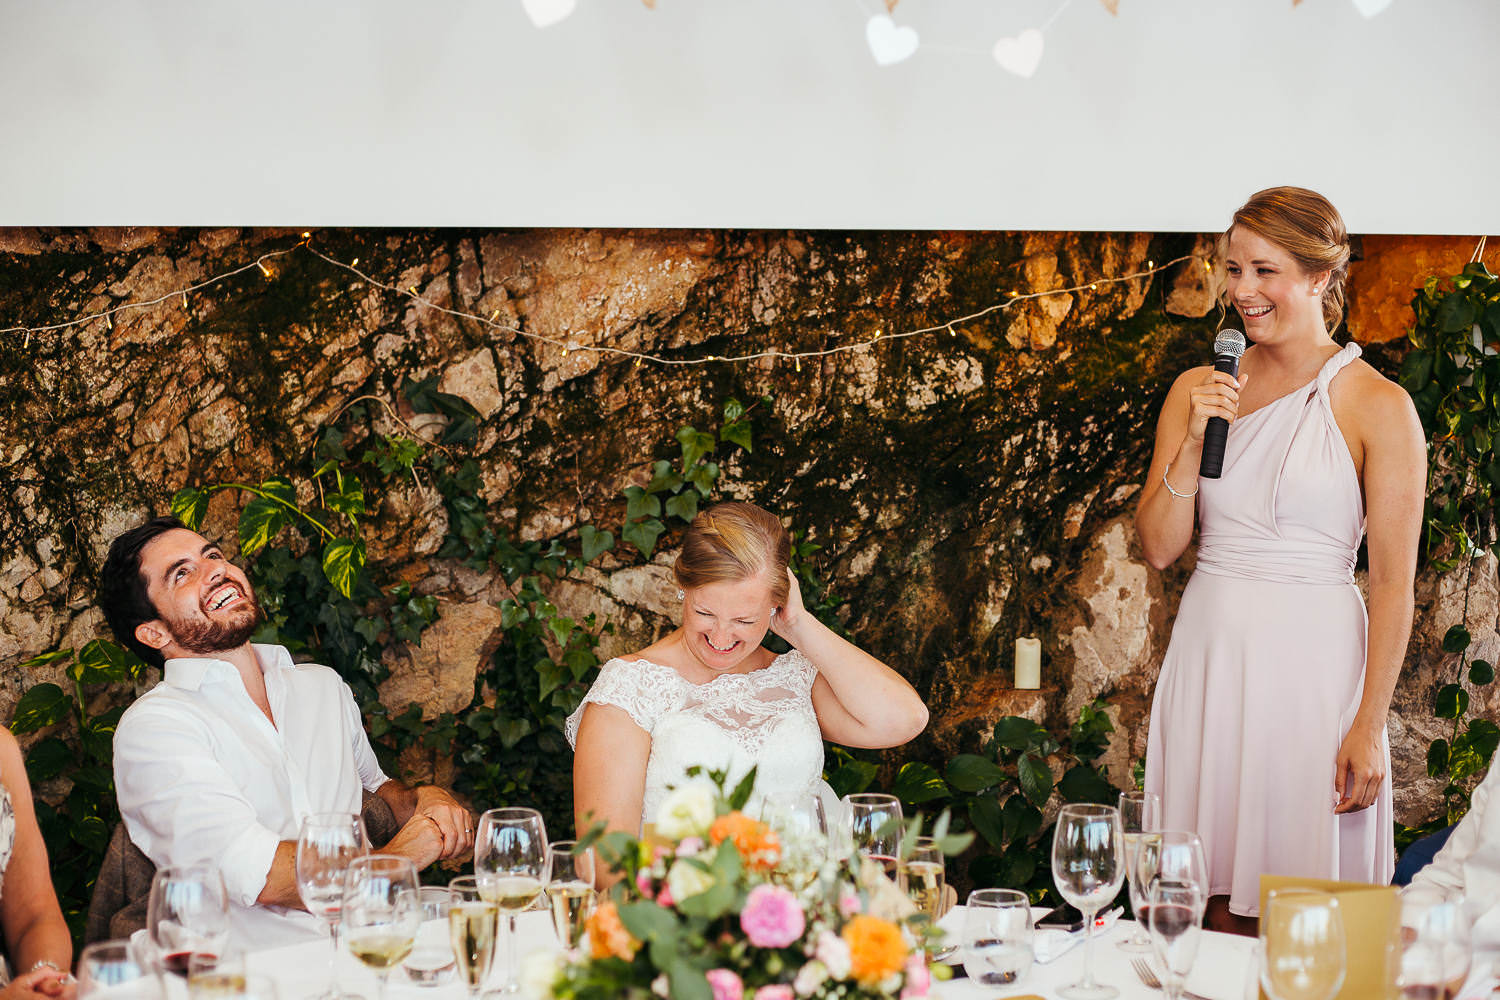 just married couple laughing moment wedding reportage tossa de mar girona